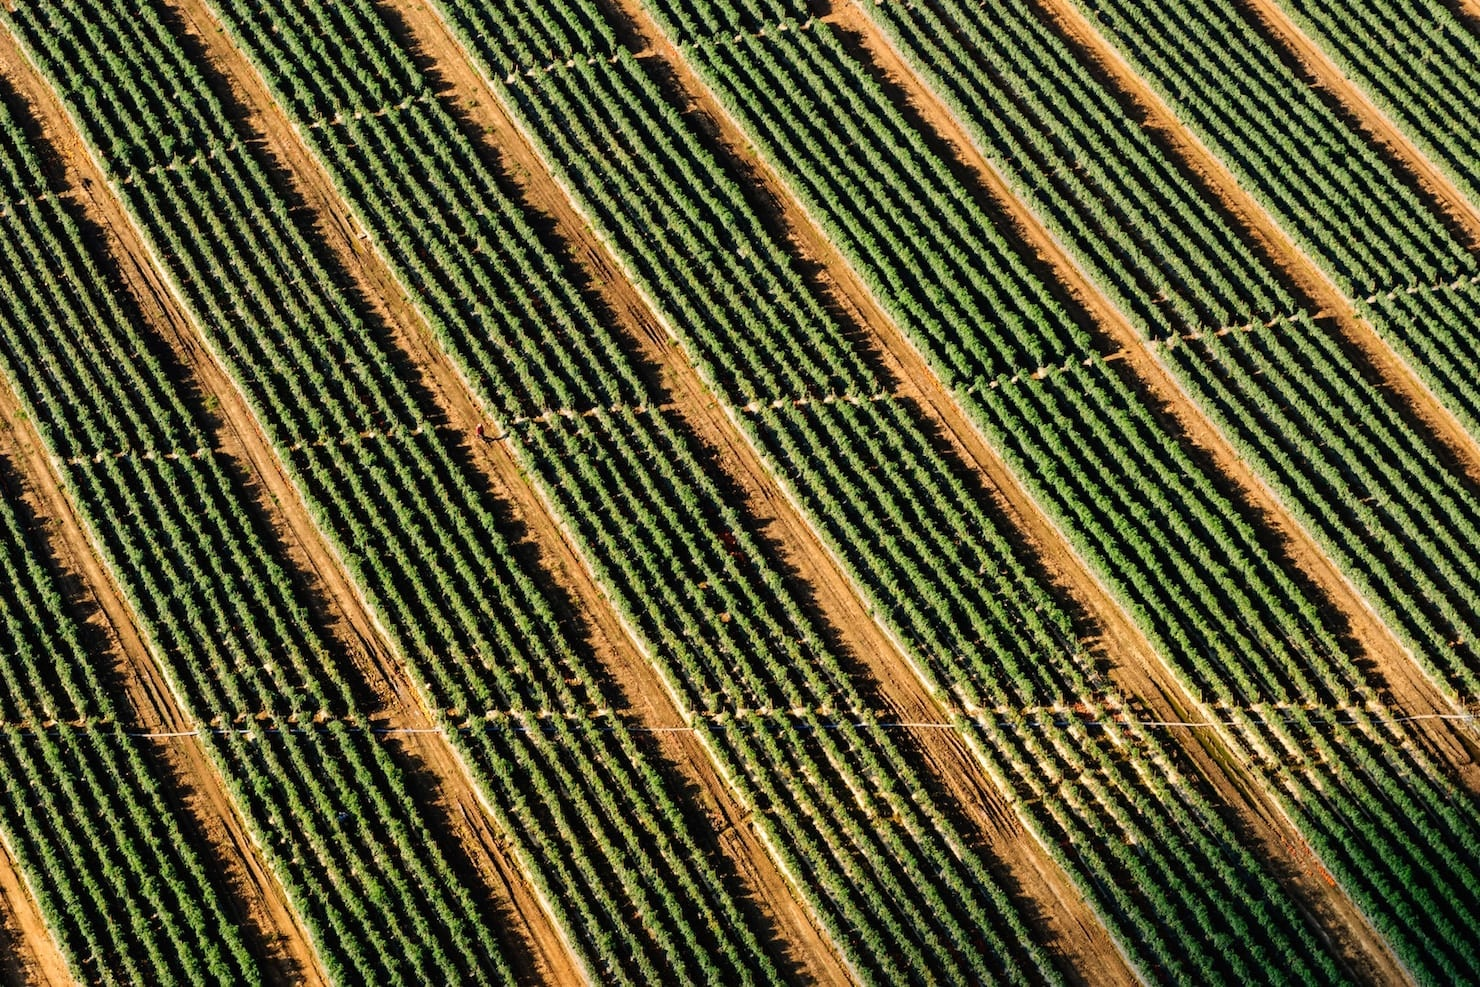 Precision Agriculture thumbnail